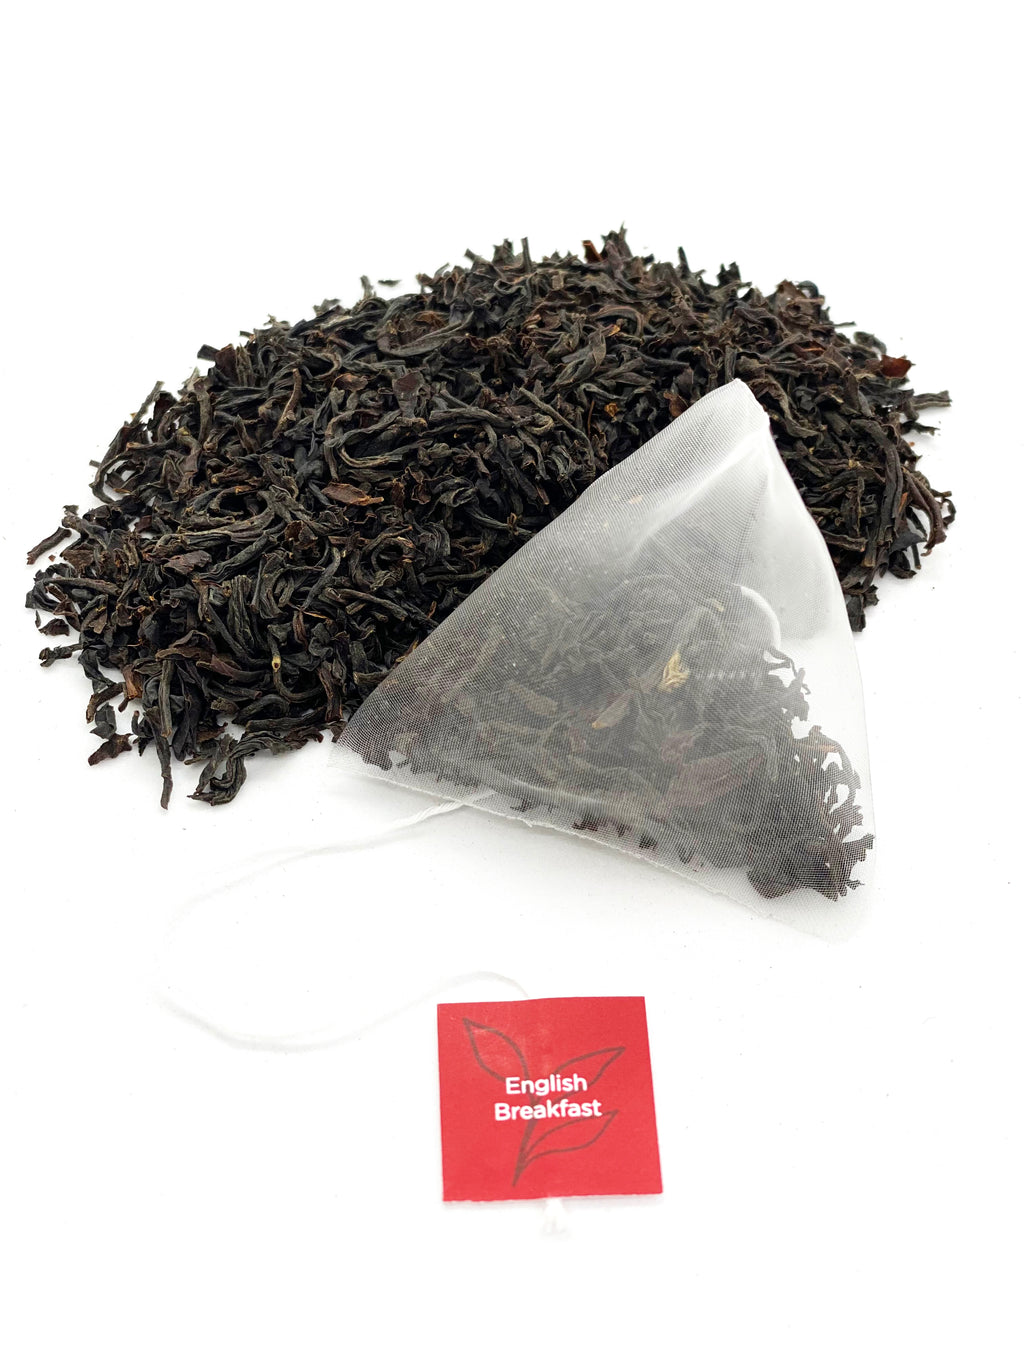 Organic English Breakfast - Pyramid Tea Bags